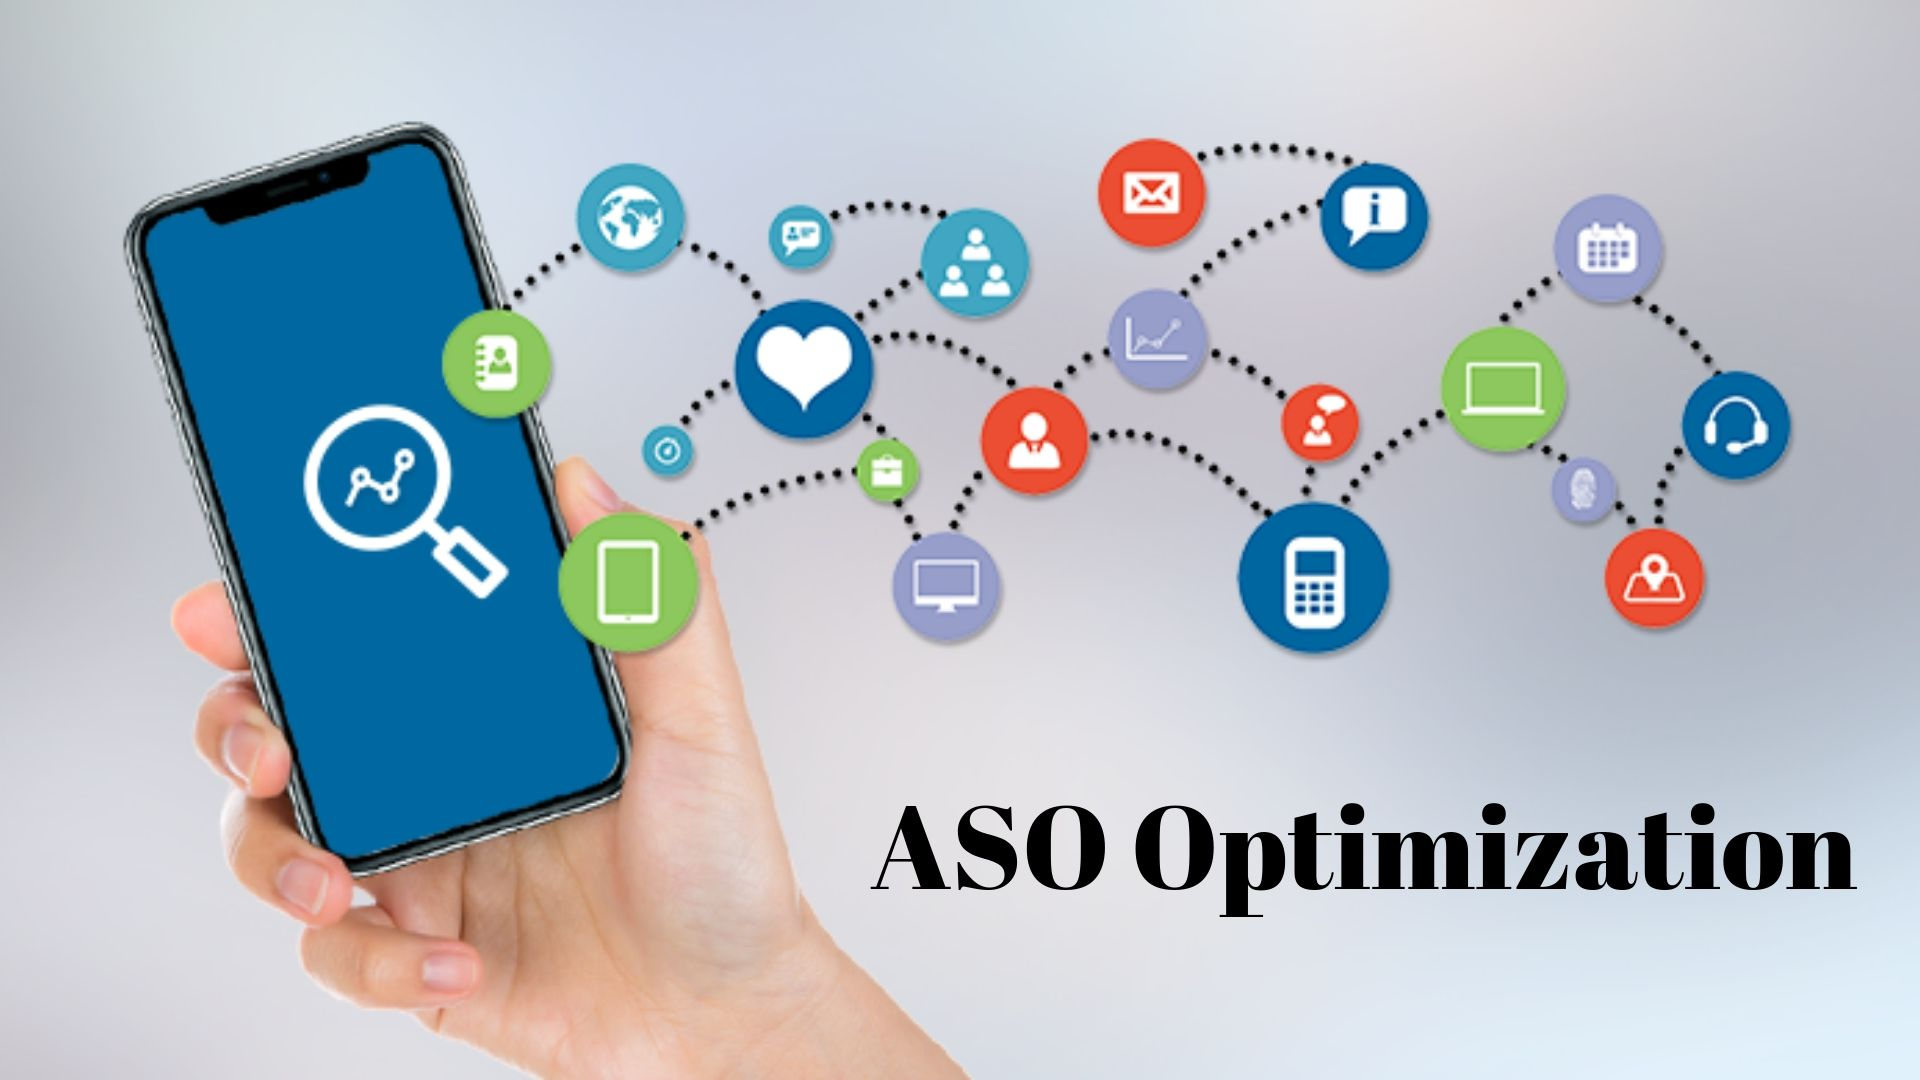 App Store Optimization: Your Guide To Mobile App Marketing Services